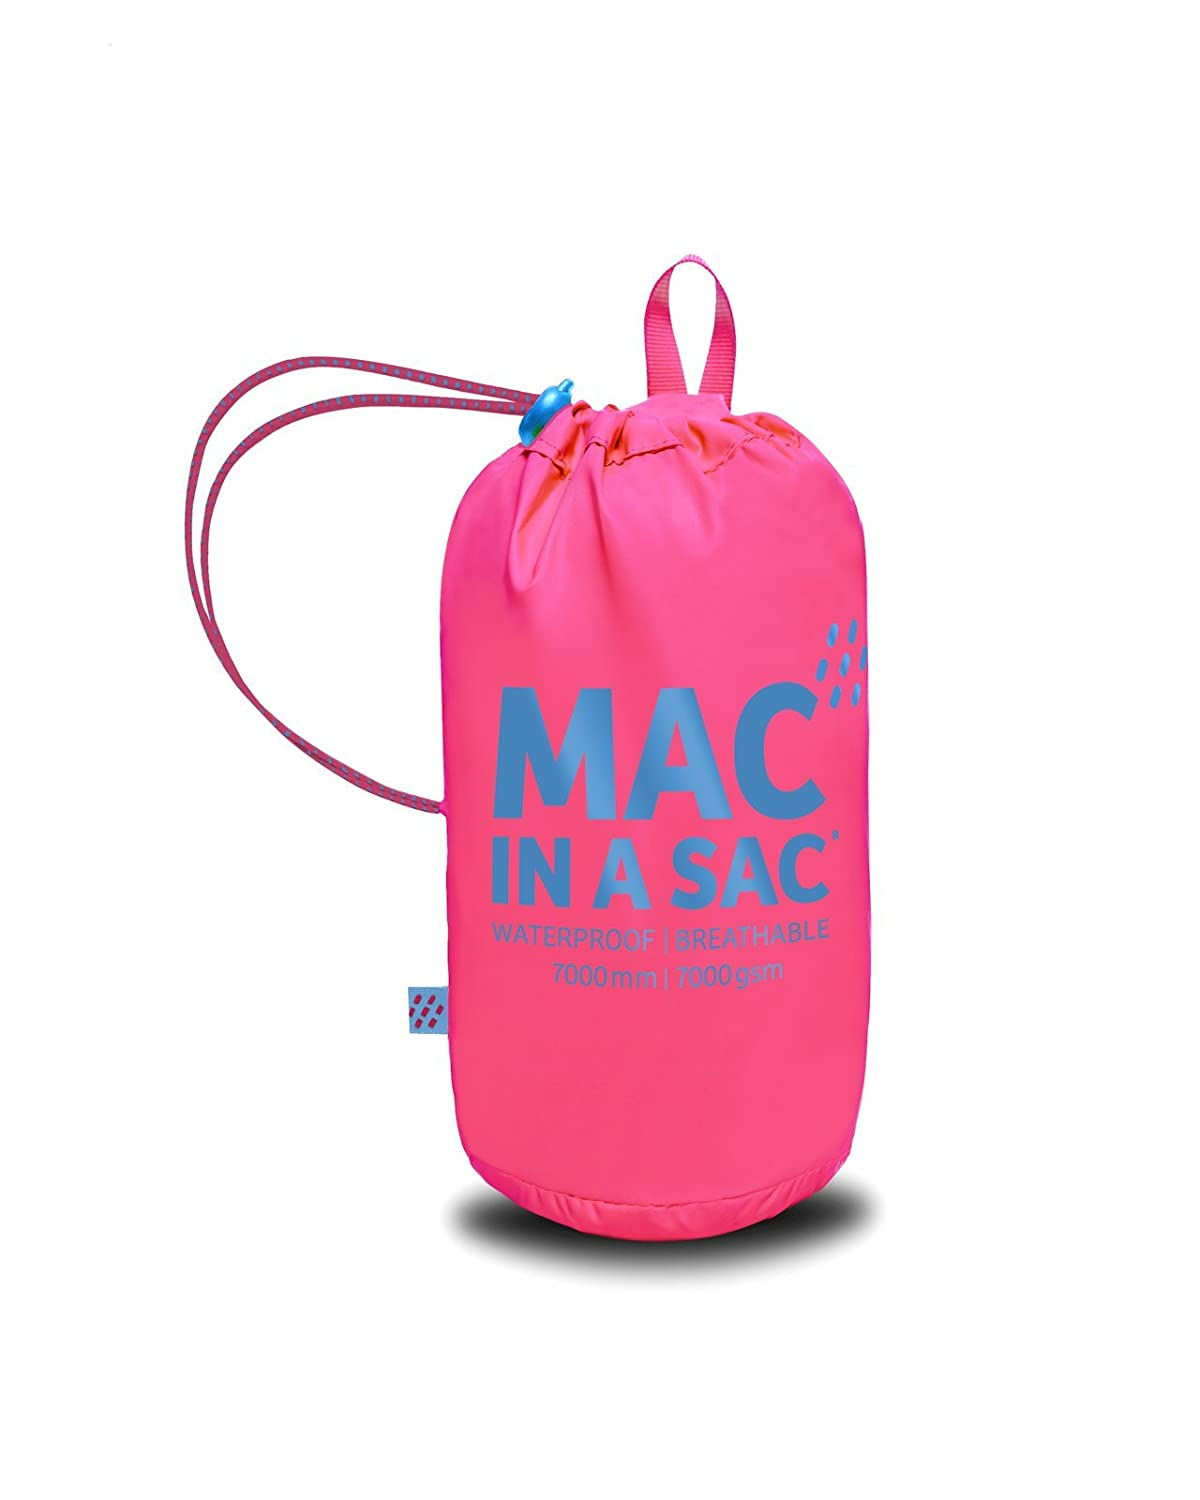 Mac In Mac A Packable Sac chamarra de Rosado neón Packable ...